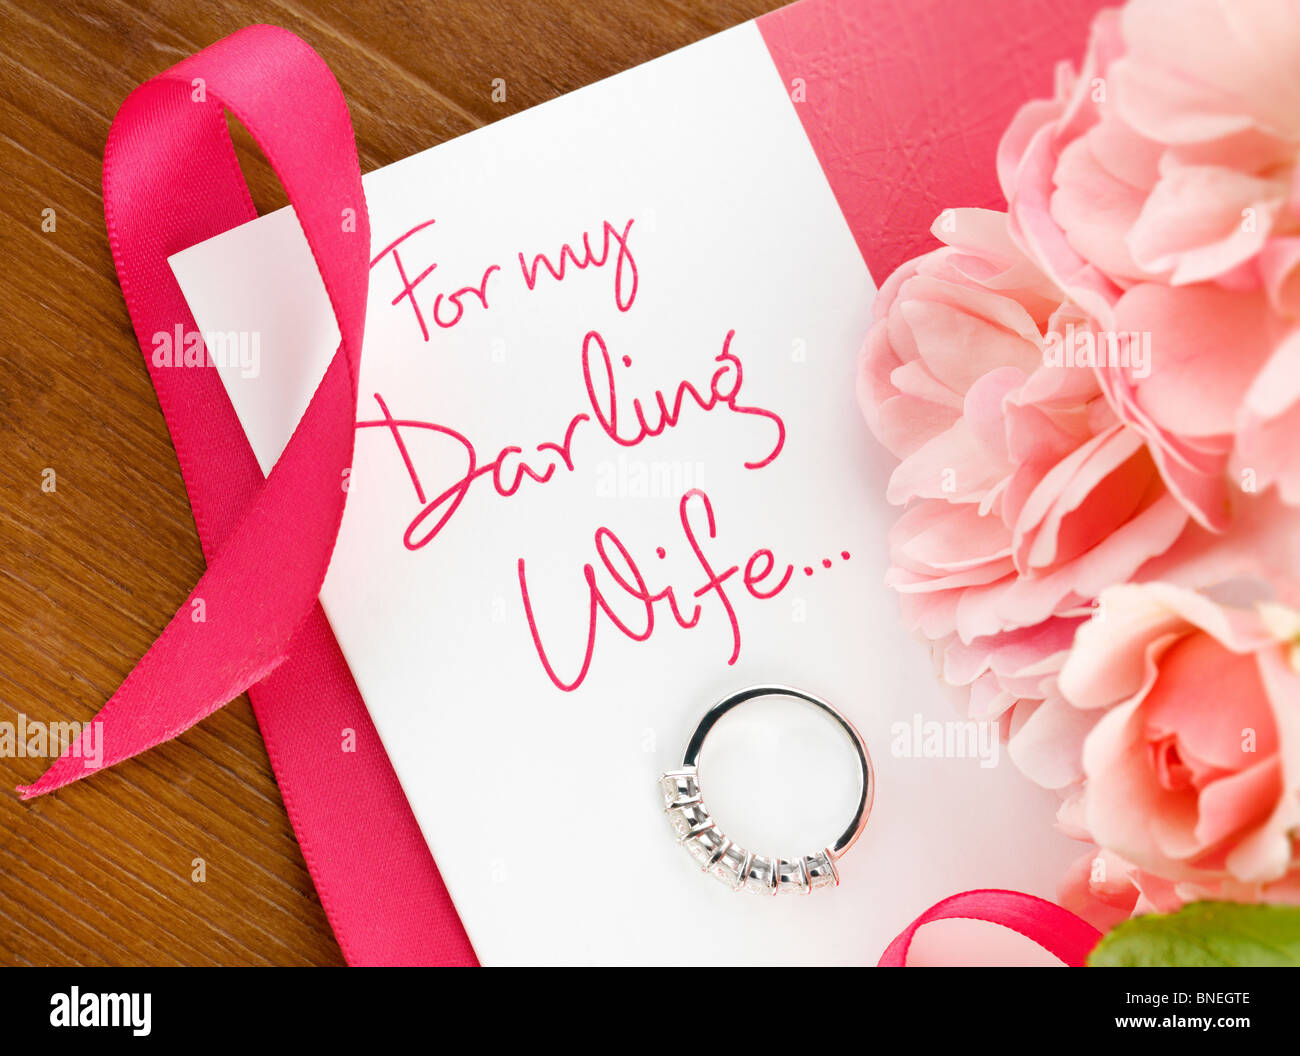 Romantic greeting card for your wife stock photo 30438702 alamy romantic greeting card for your wife m4hsunfo Gallery